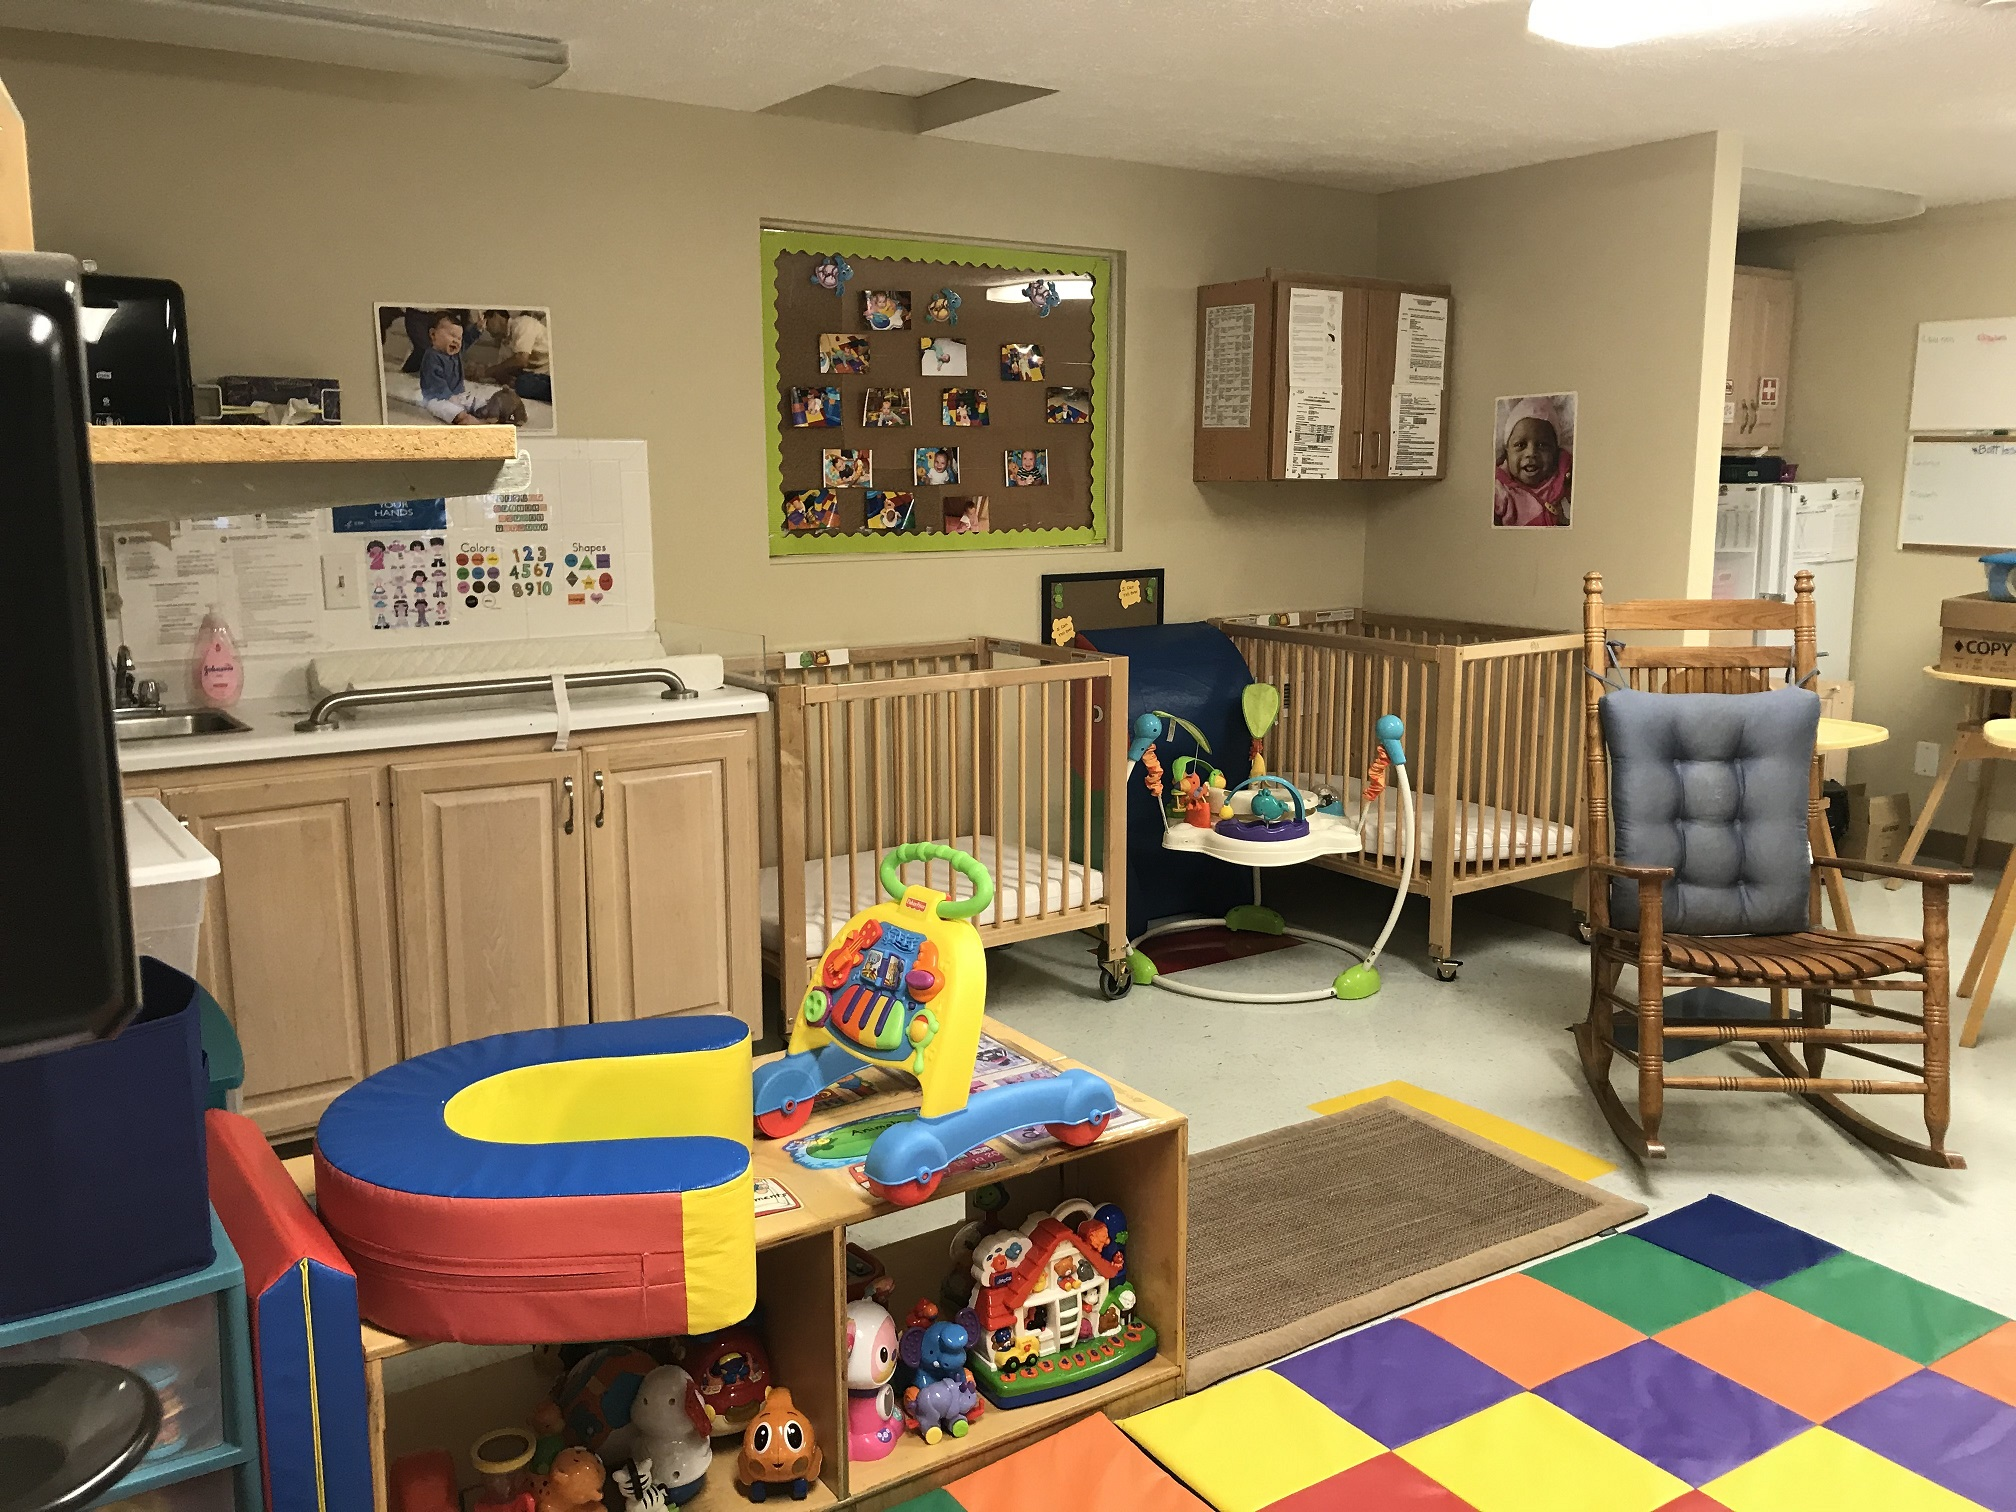 daycare nursery picture 6-12-2020